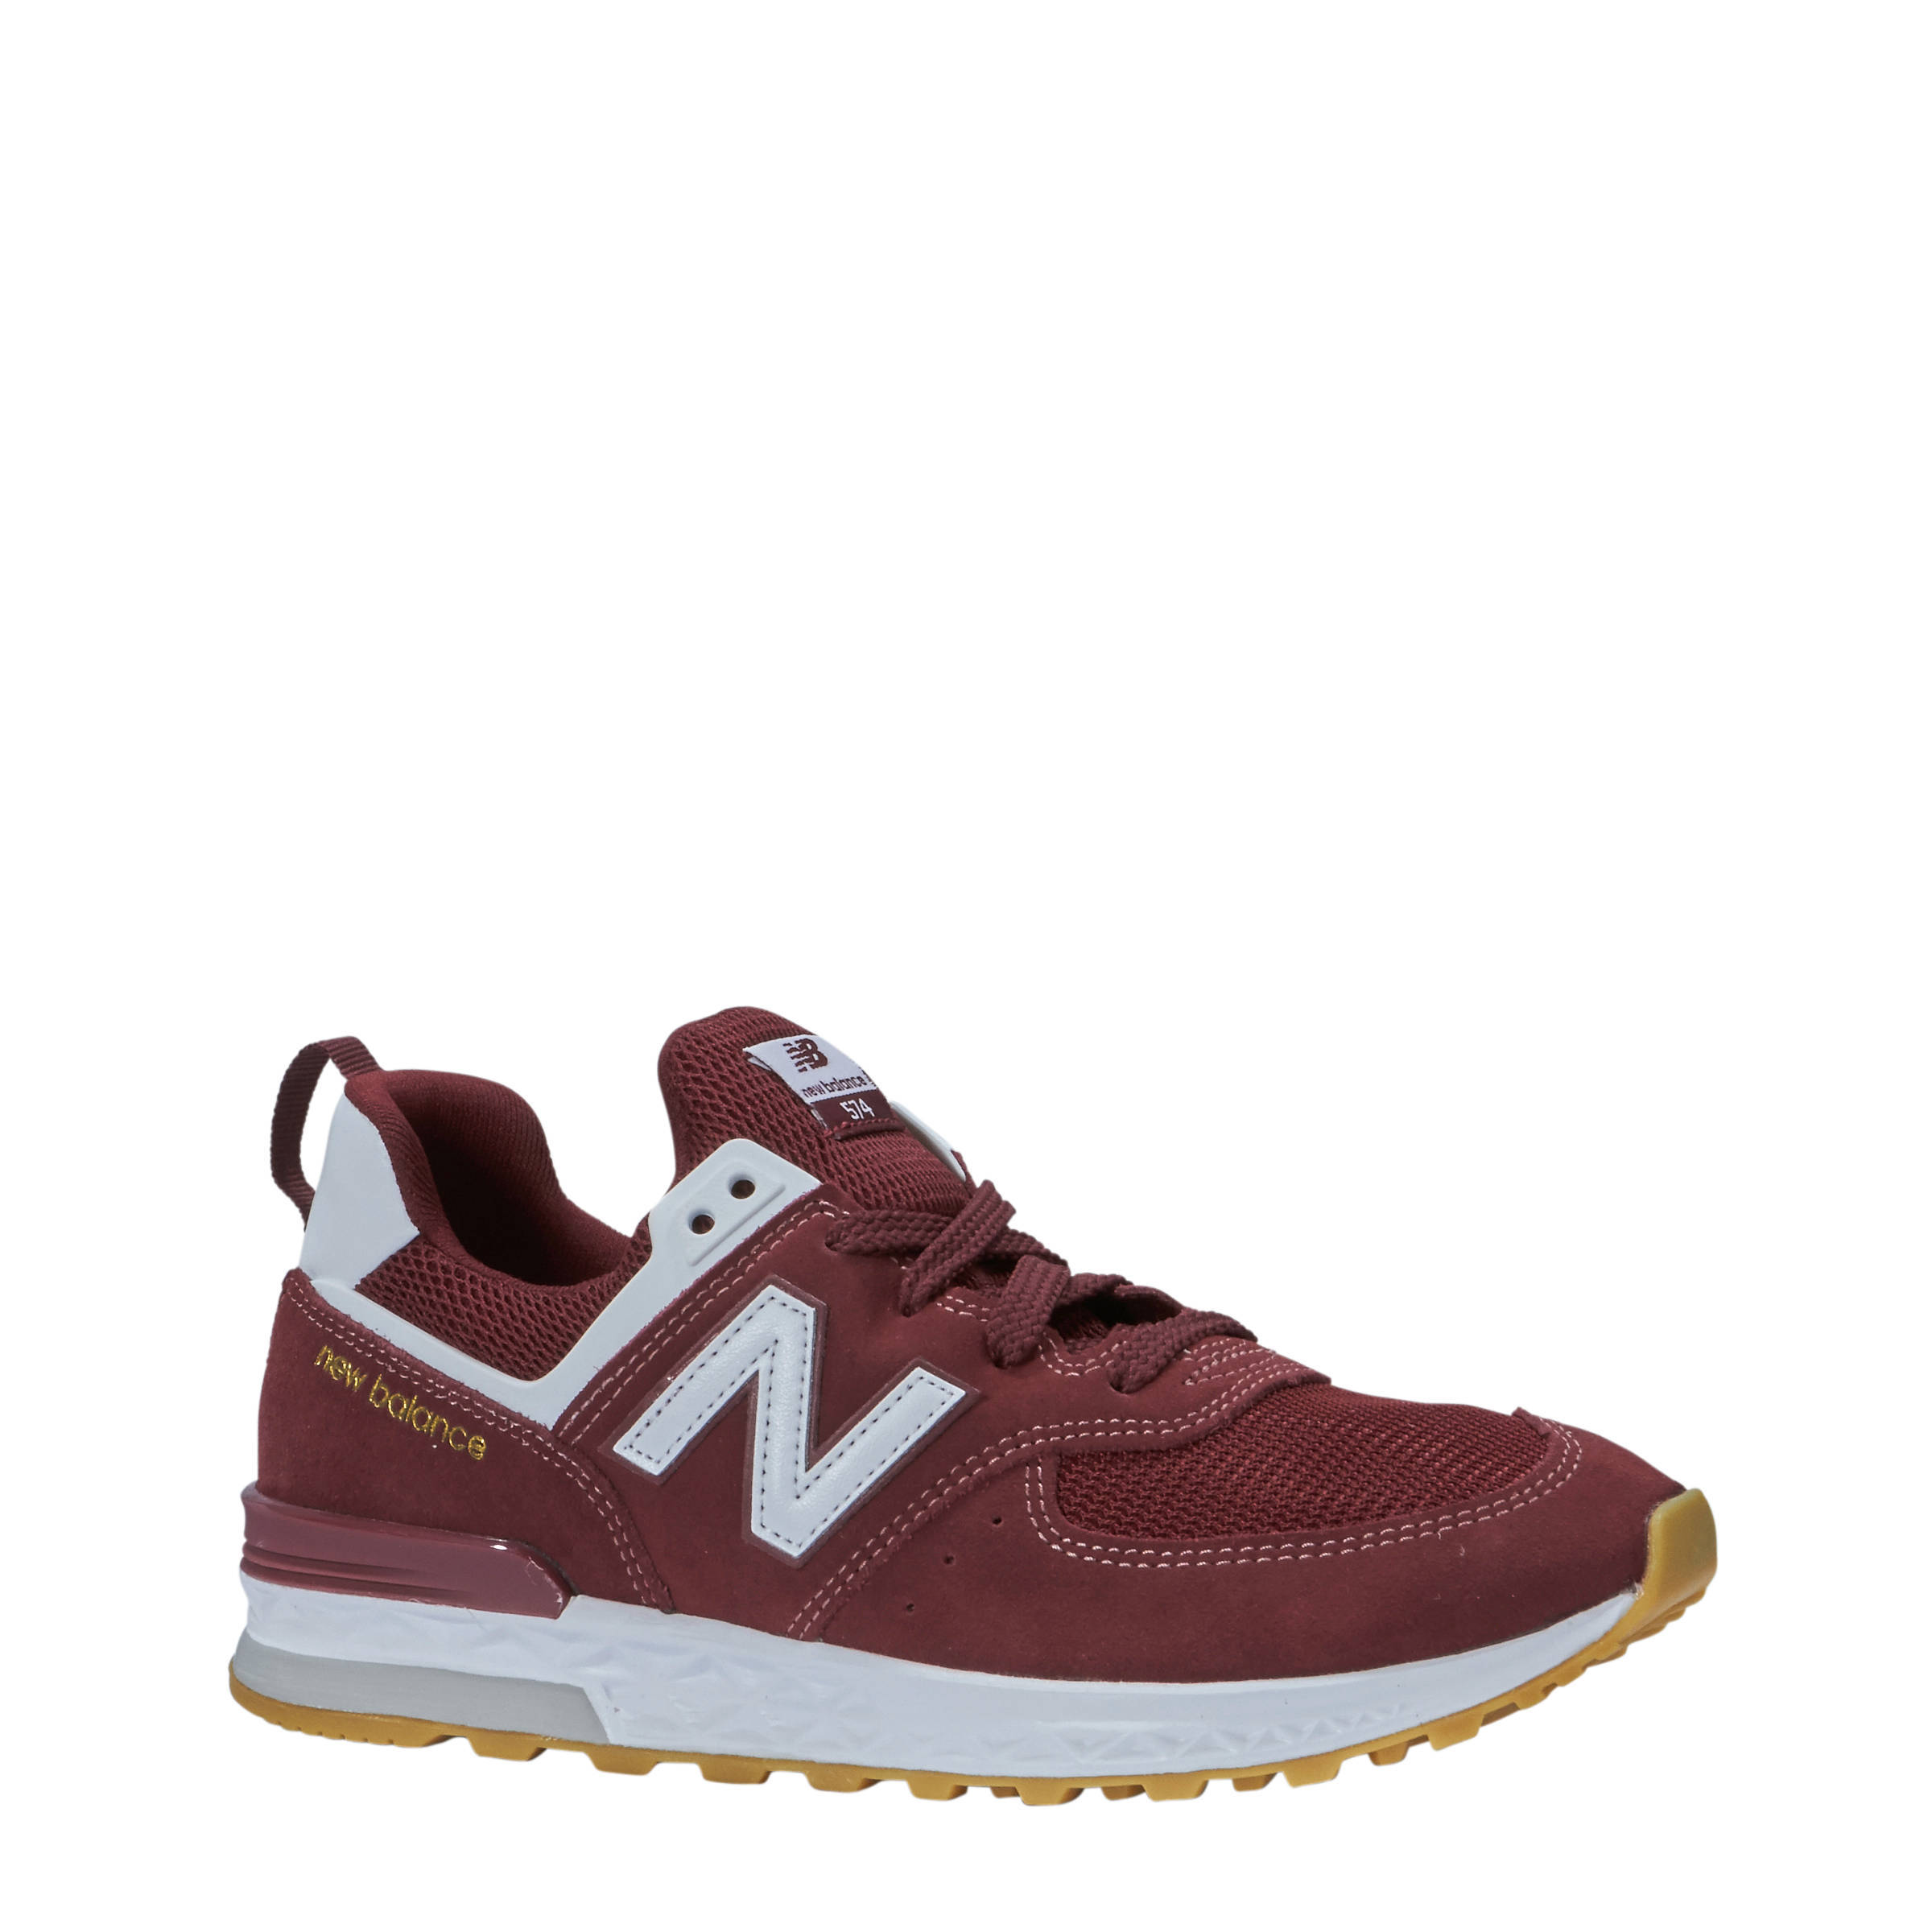 new balance 574 dames bordeaux rood